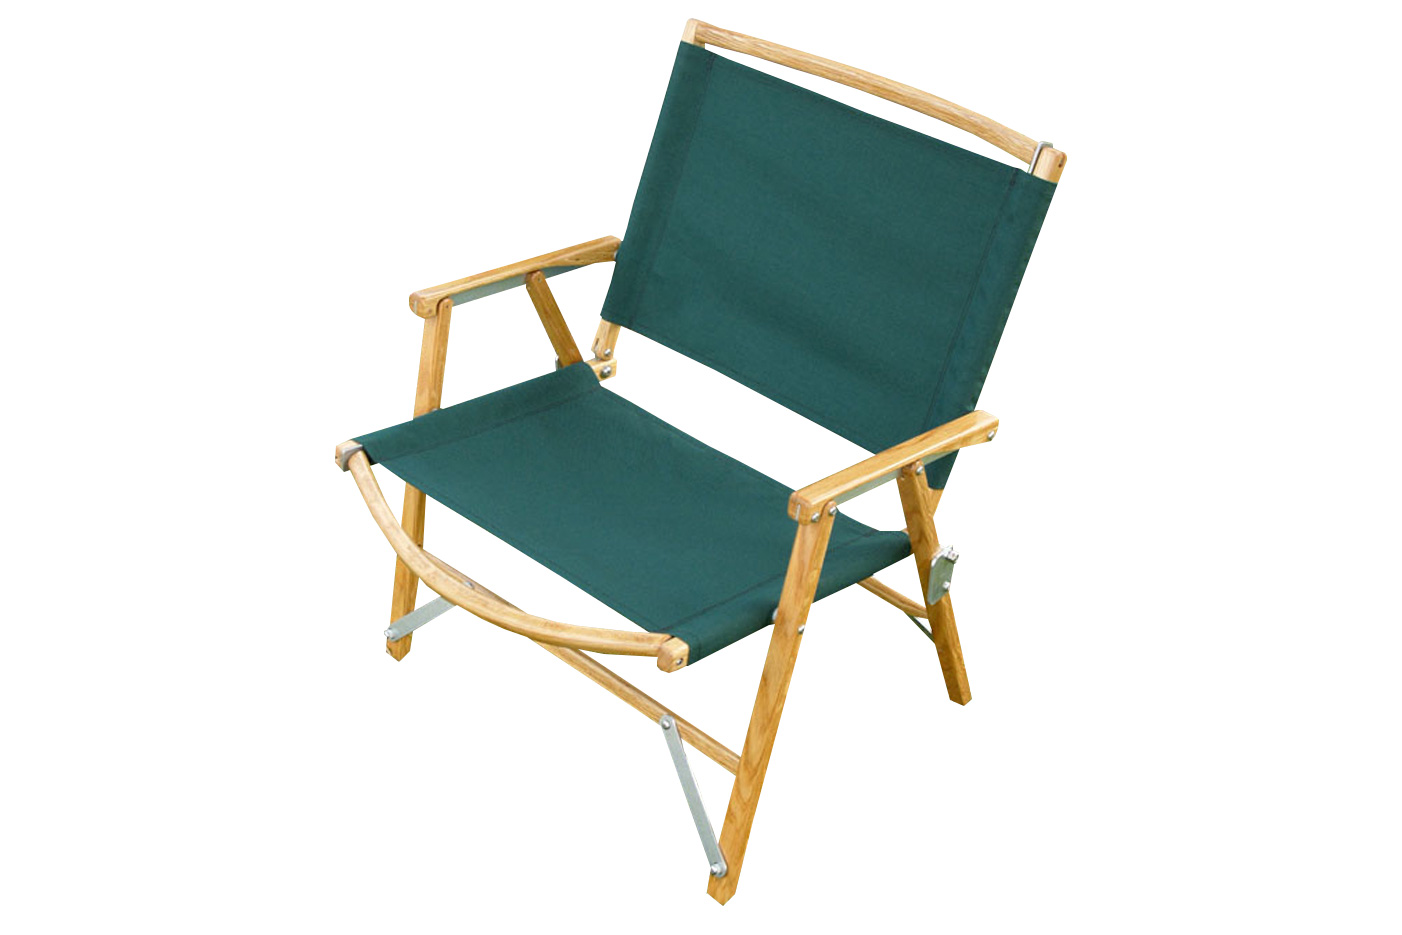 Camper Chairs Pick The Right Camping Chair For Overland Or Car Camping